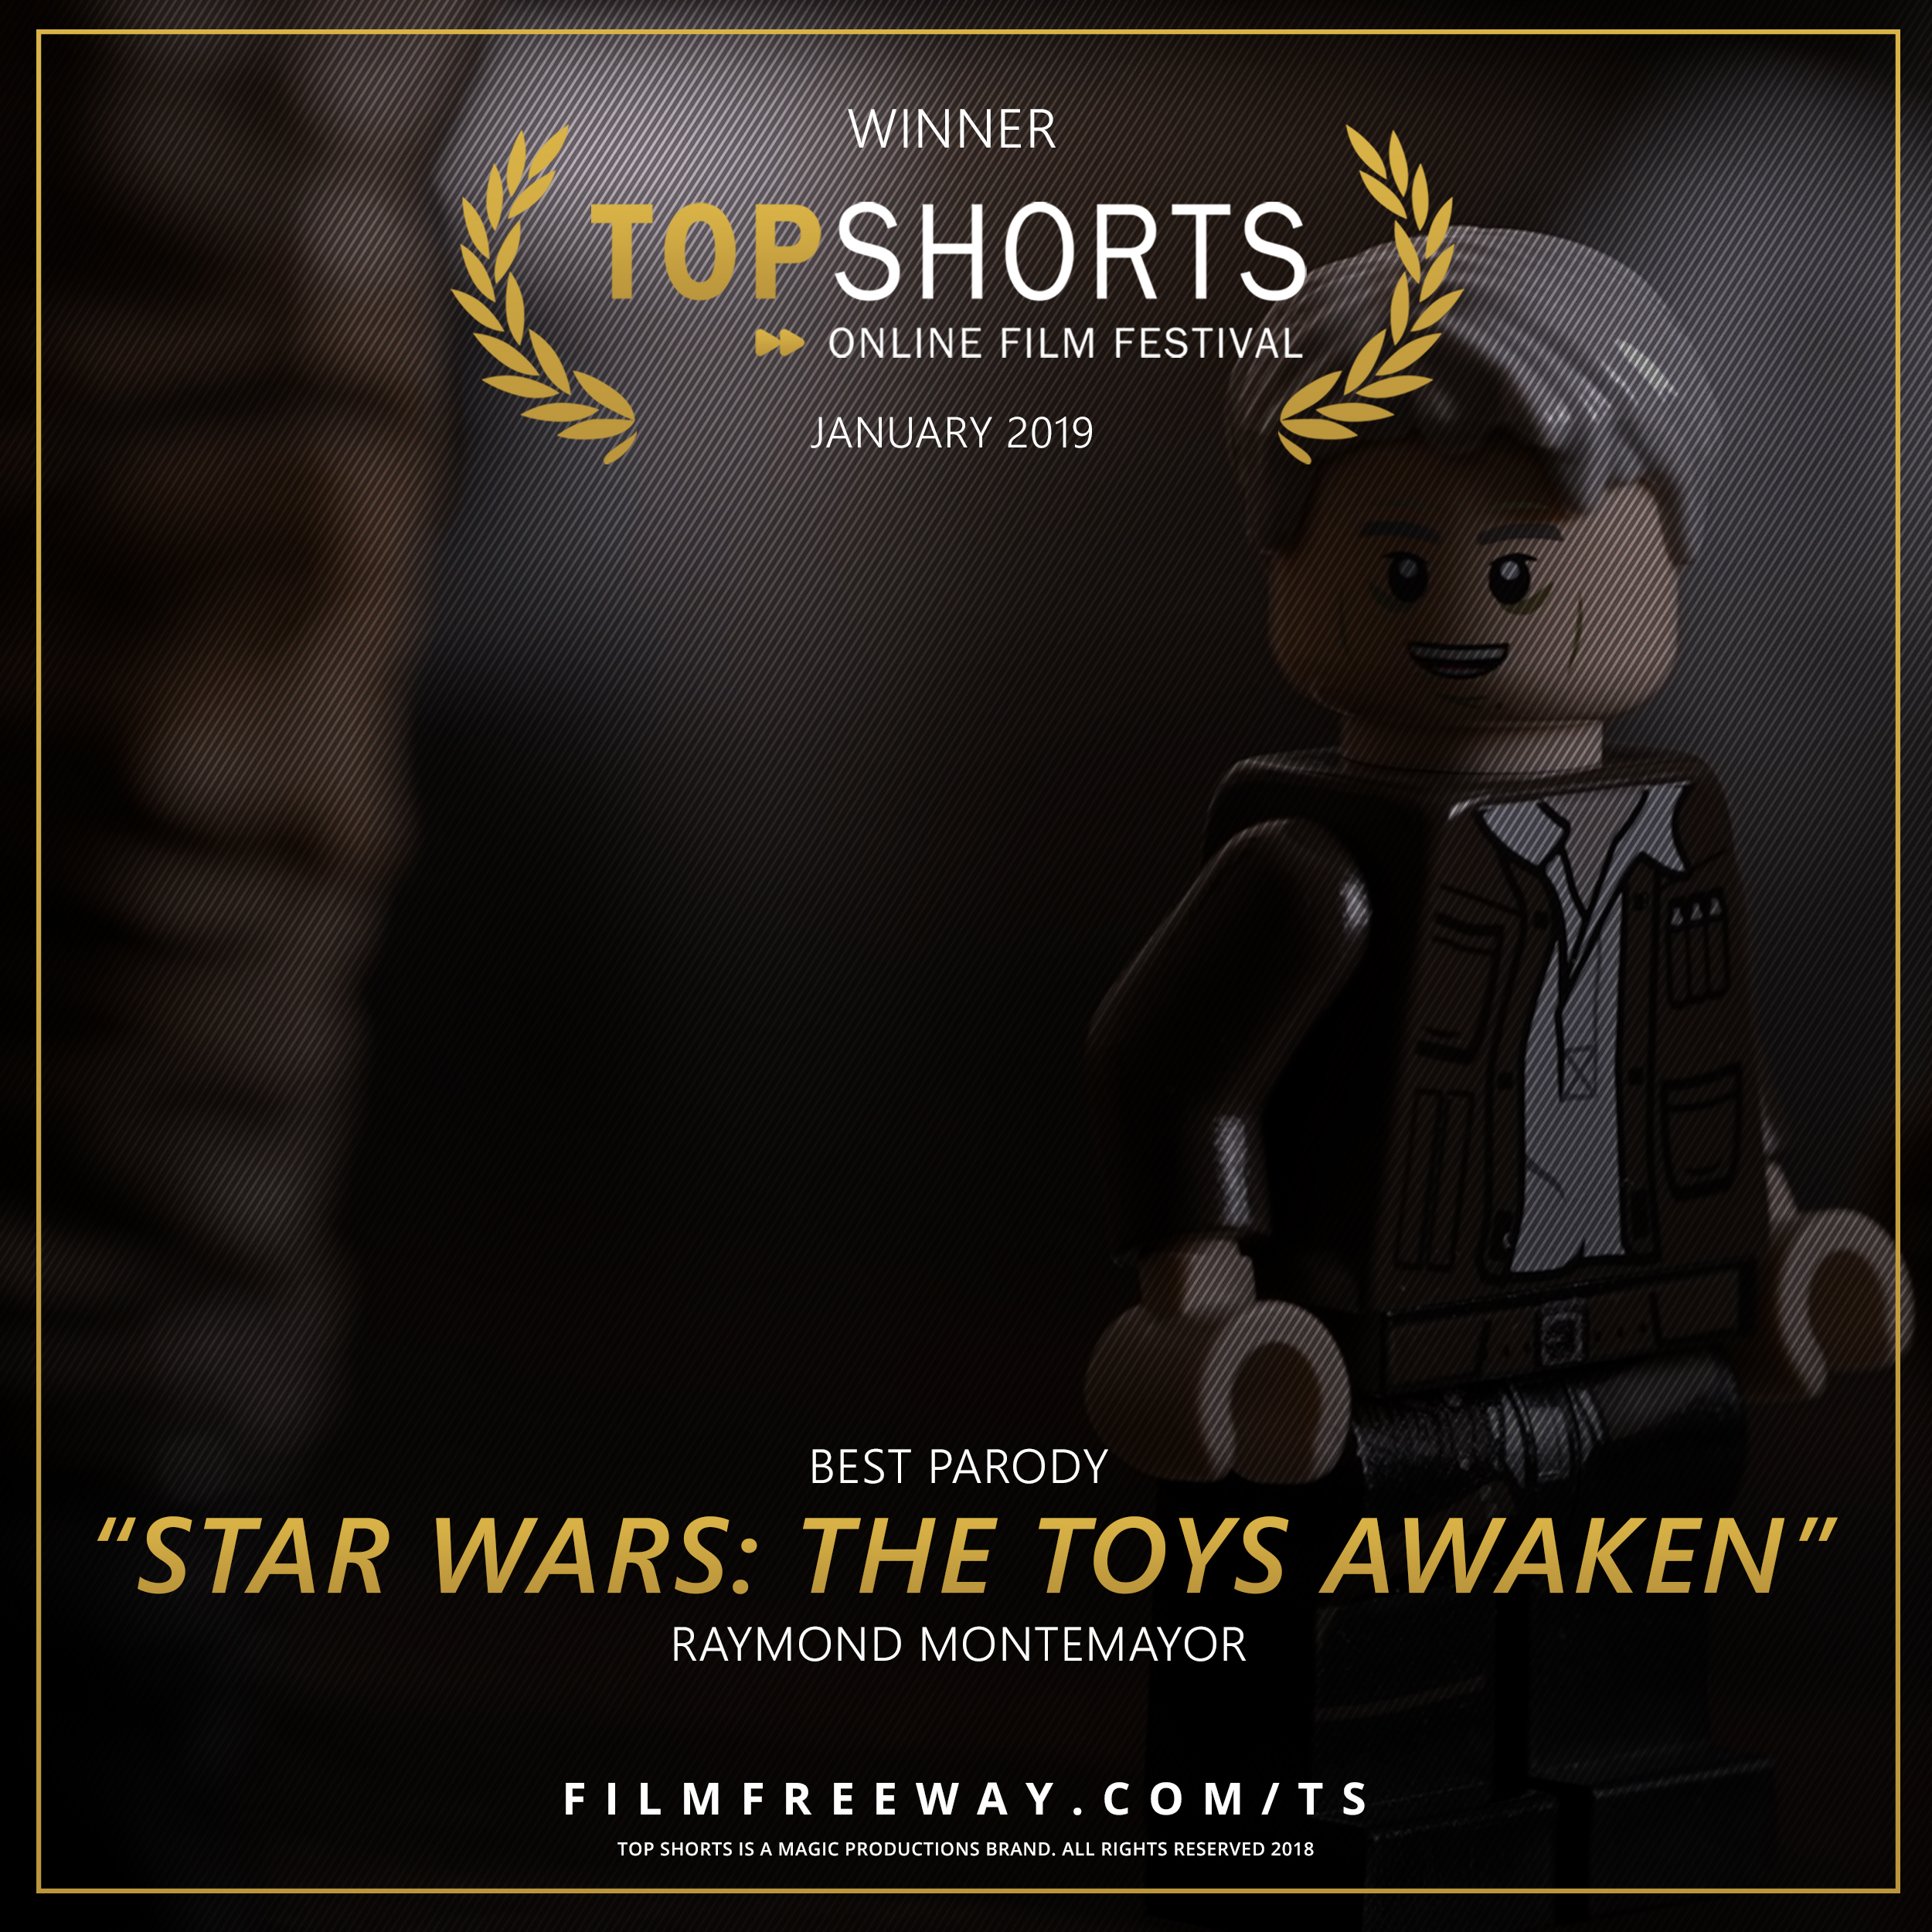 STAR WARS- THE TOYS AWAKEN